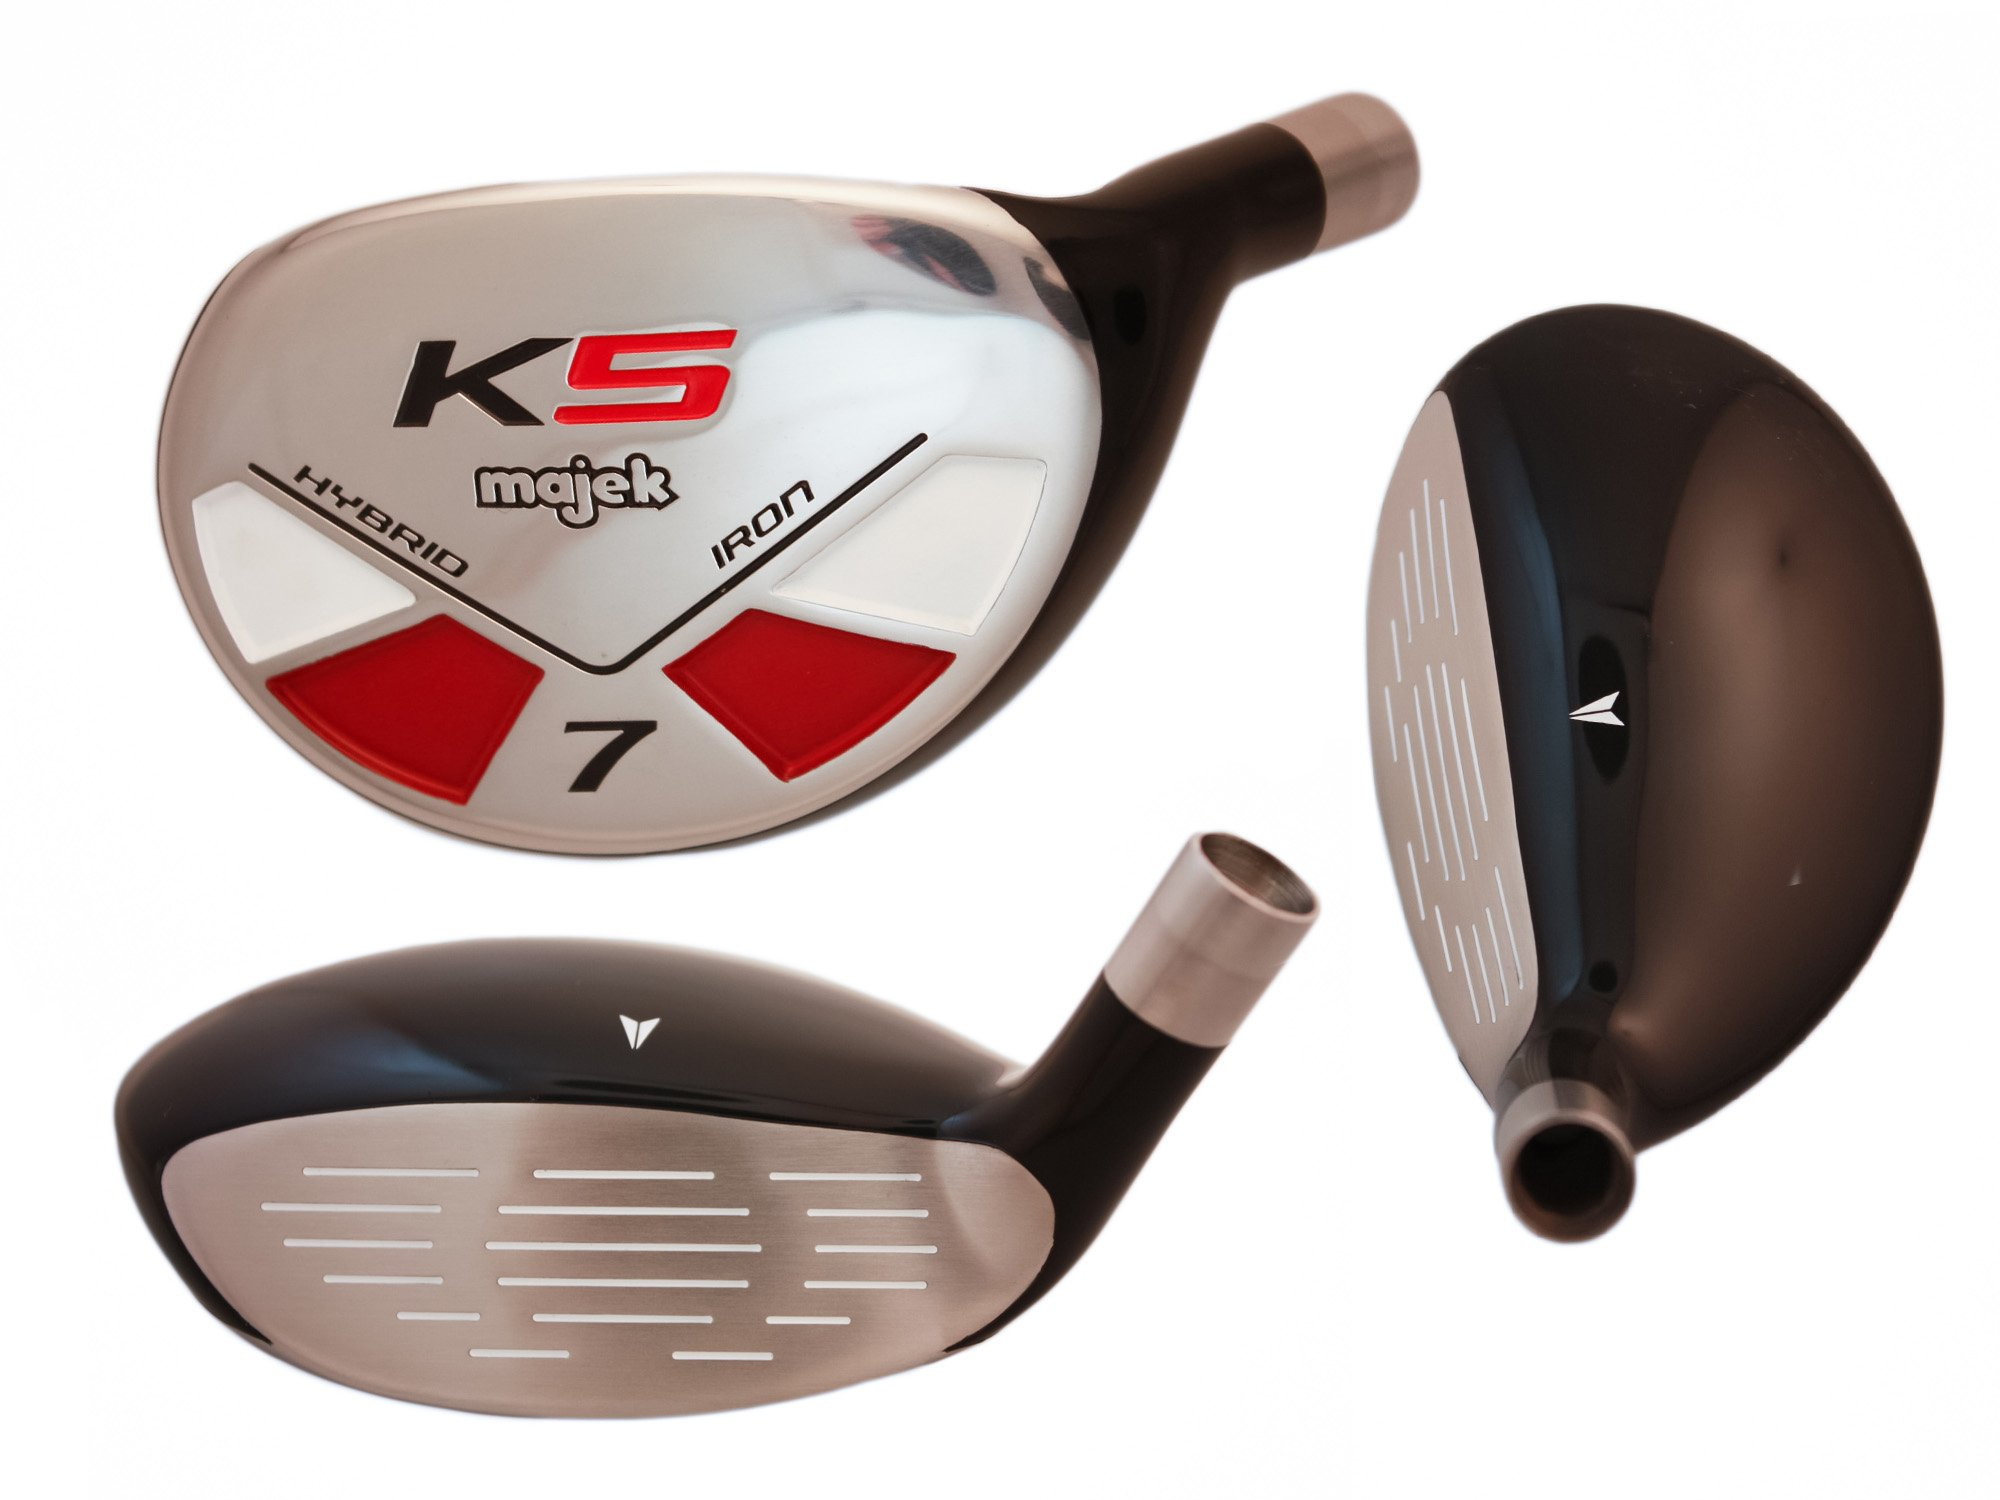 Big Tall Golf All True Hybrids Majek +1'' Longer Than Standard Length (Plus One Inch Longer) Set All Complete Full Set, Which Includes: #3, 4, 5, 6, 7, 8, 9, Pw Regular Flex R Right Handed New Rescue Utility Hybrid by Majek K5 Men's All True Hybrid Set (Regular Flex) (Image #8)